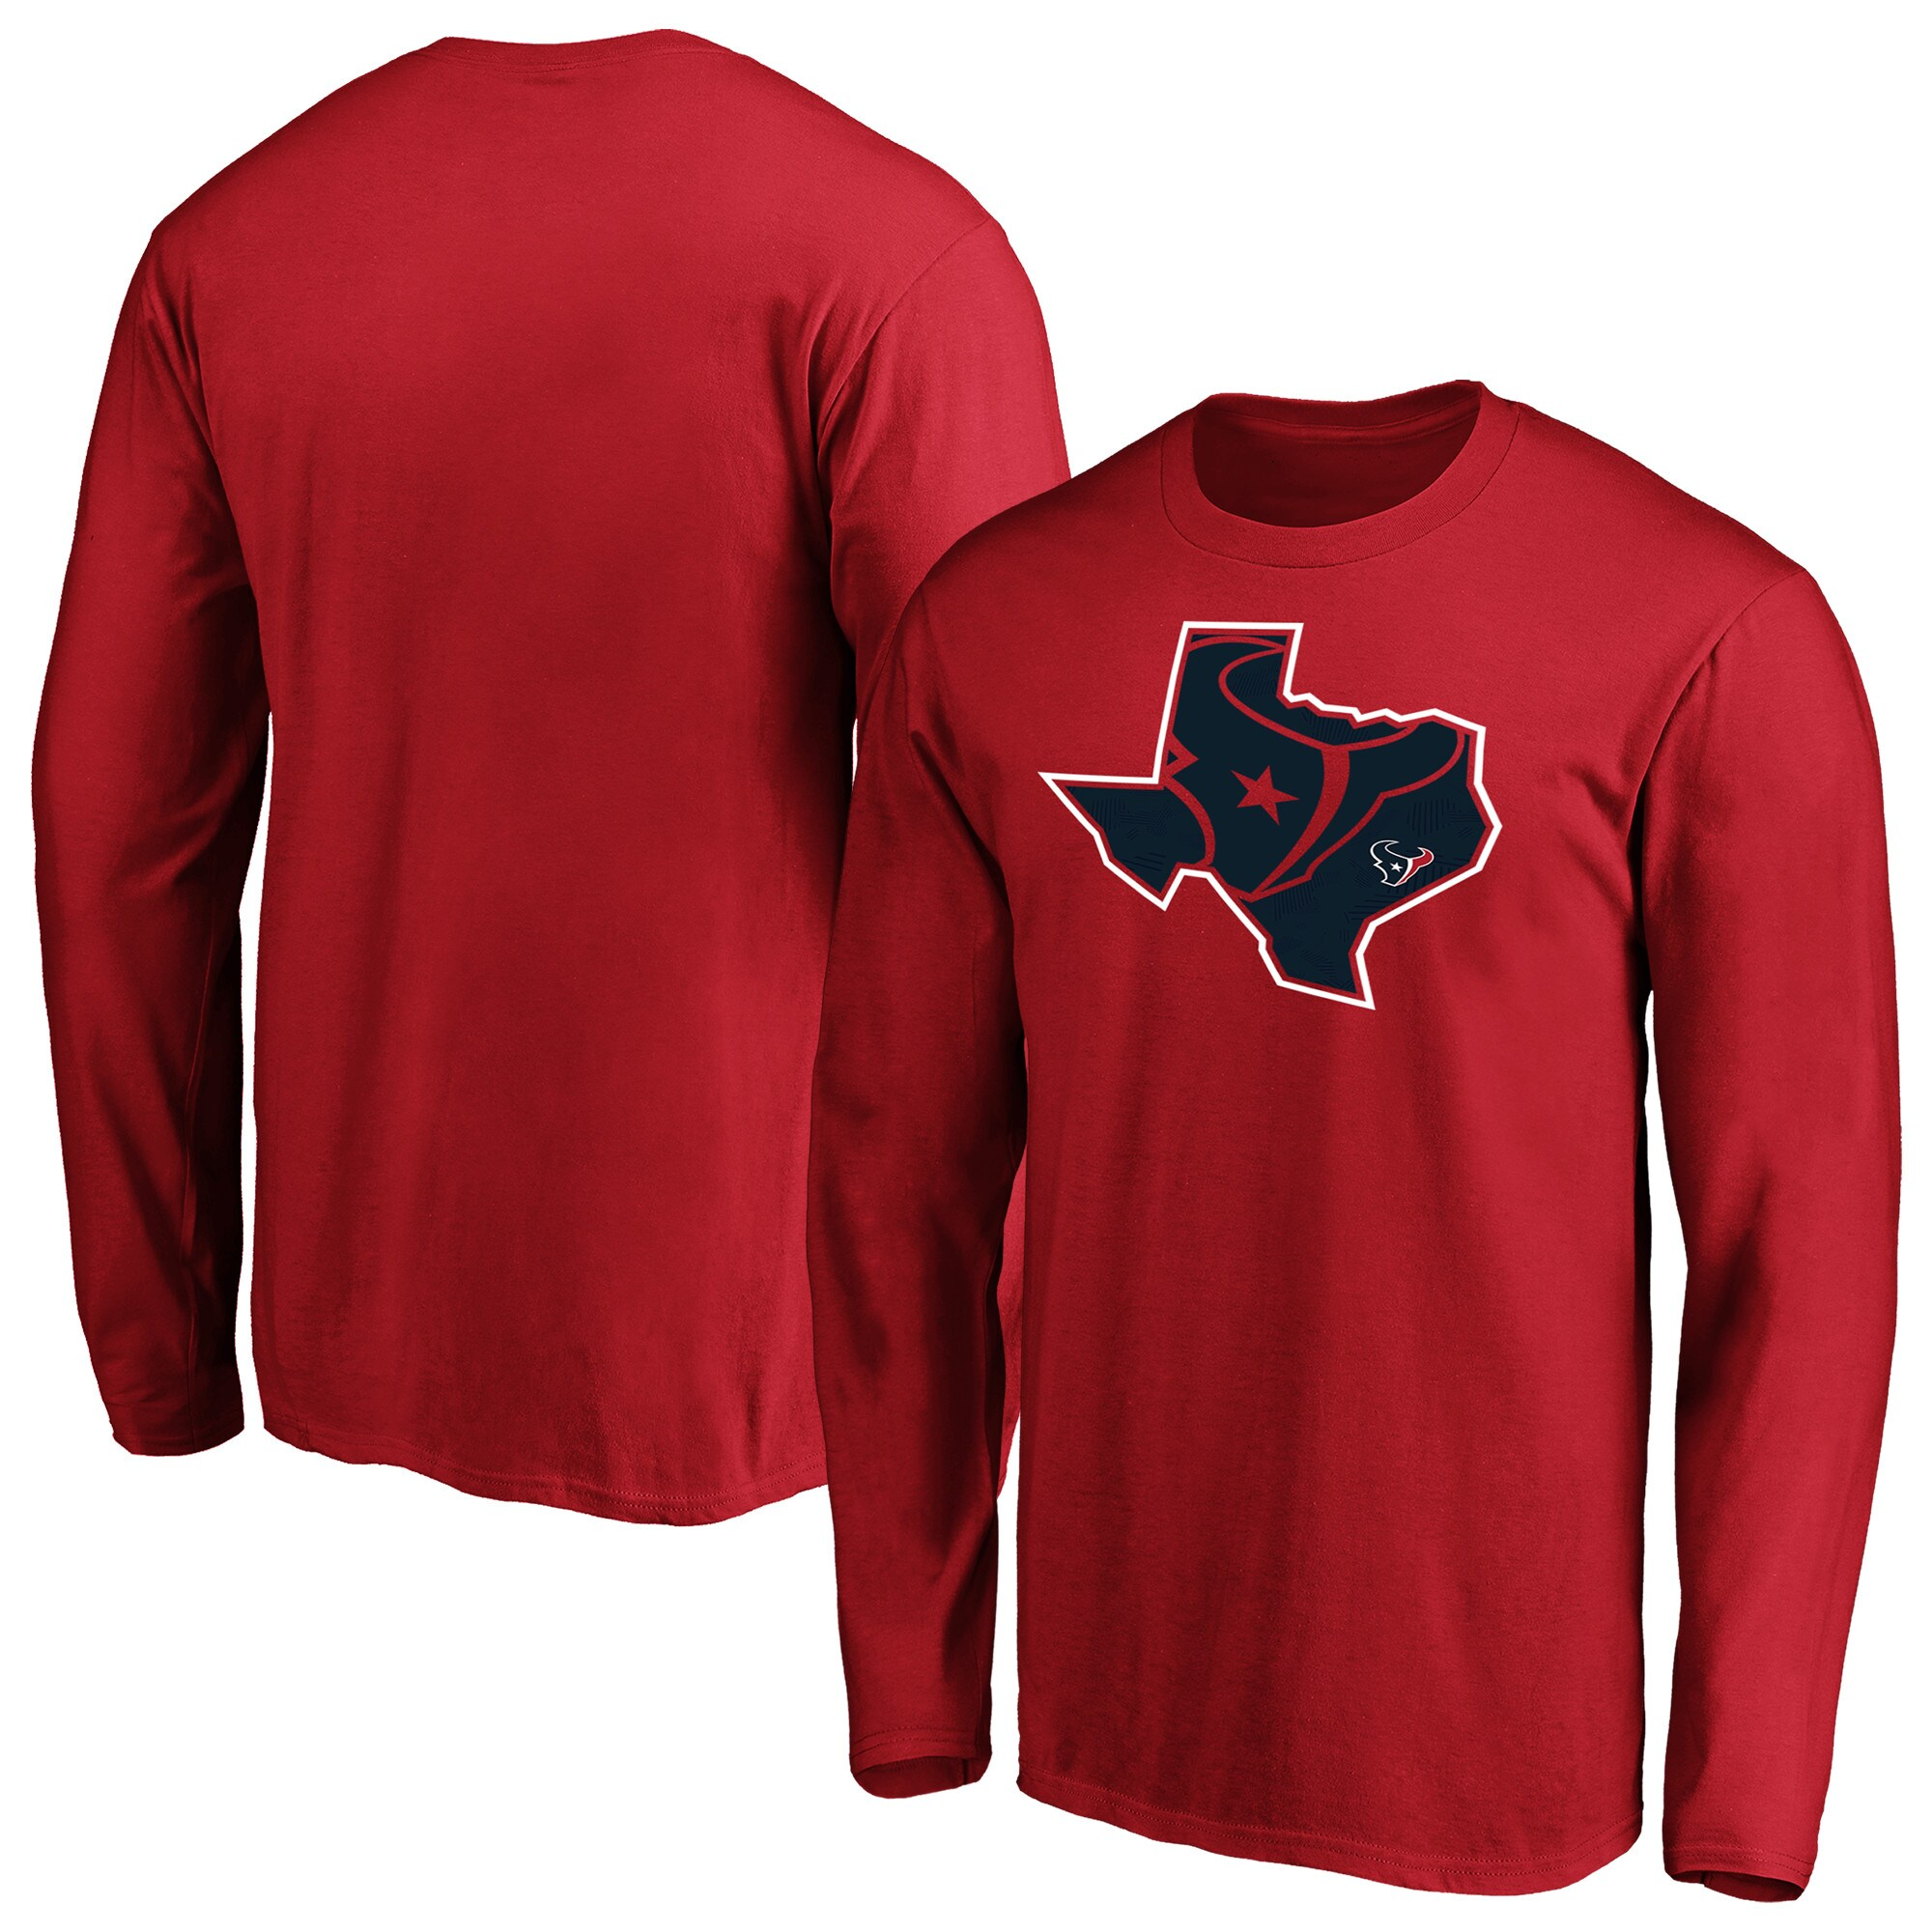 Houston Texans NFL Pro Line by Fanatics Branded Iconic State Pride Long Sleeve T-Shirt - Red